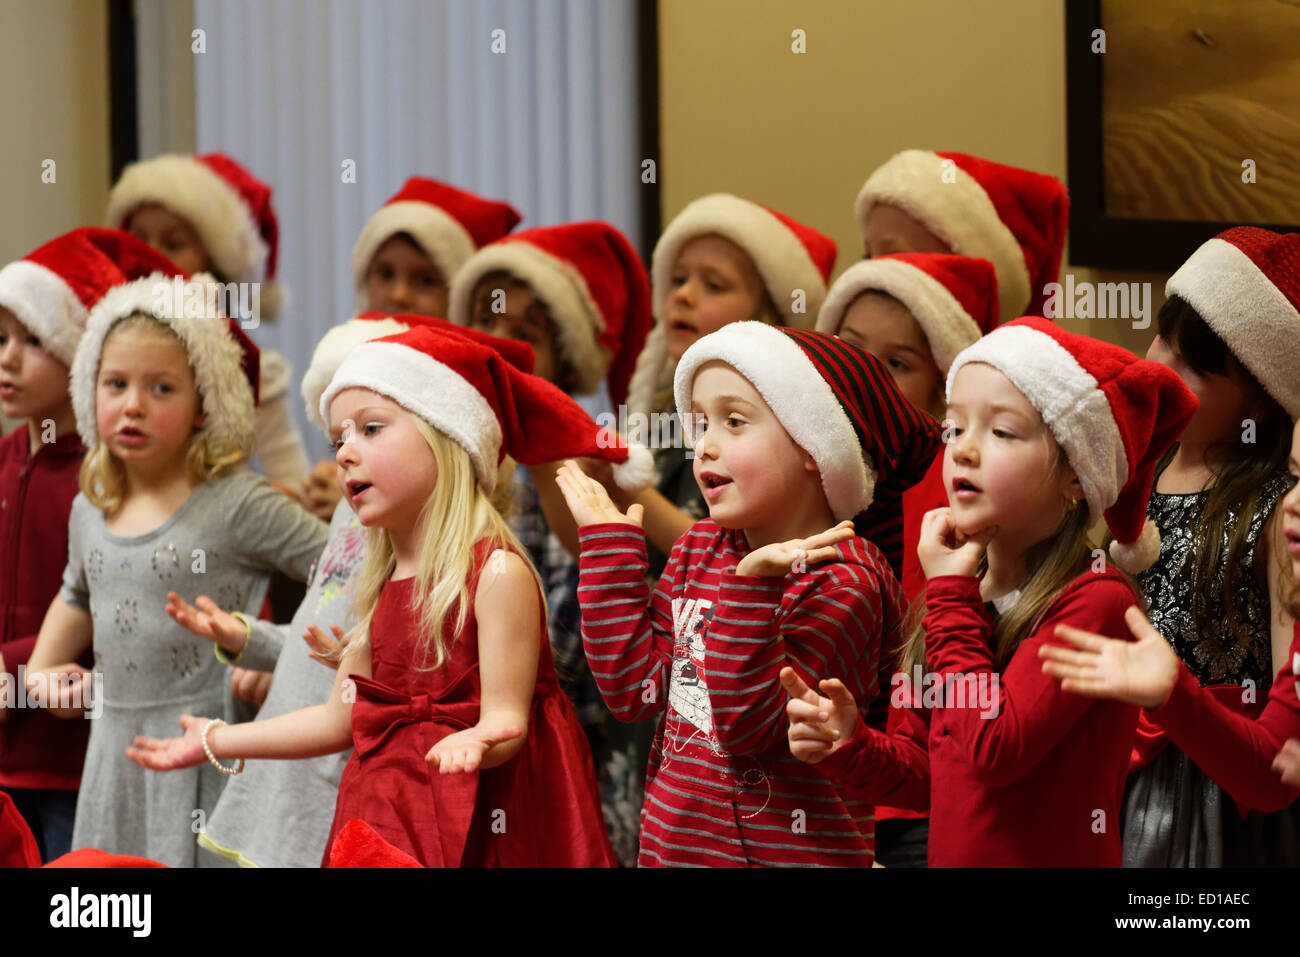 Singing Christmas Songs Stock Photos & Singing Christmas Songs ...